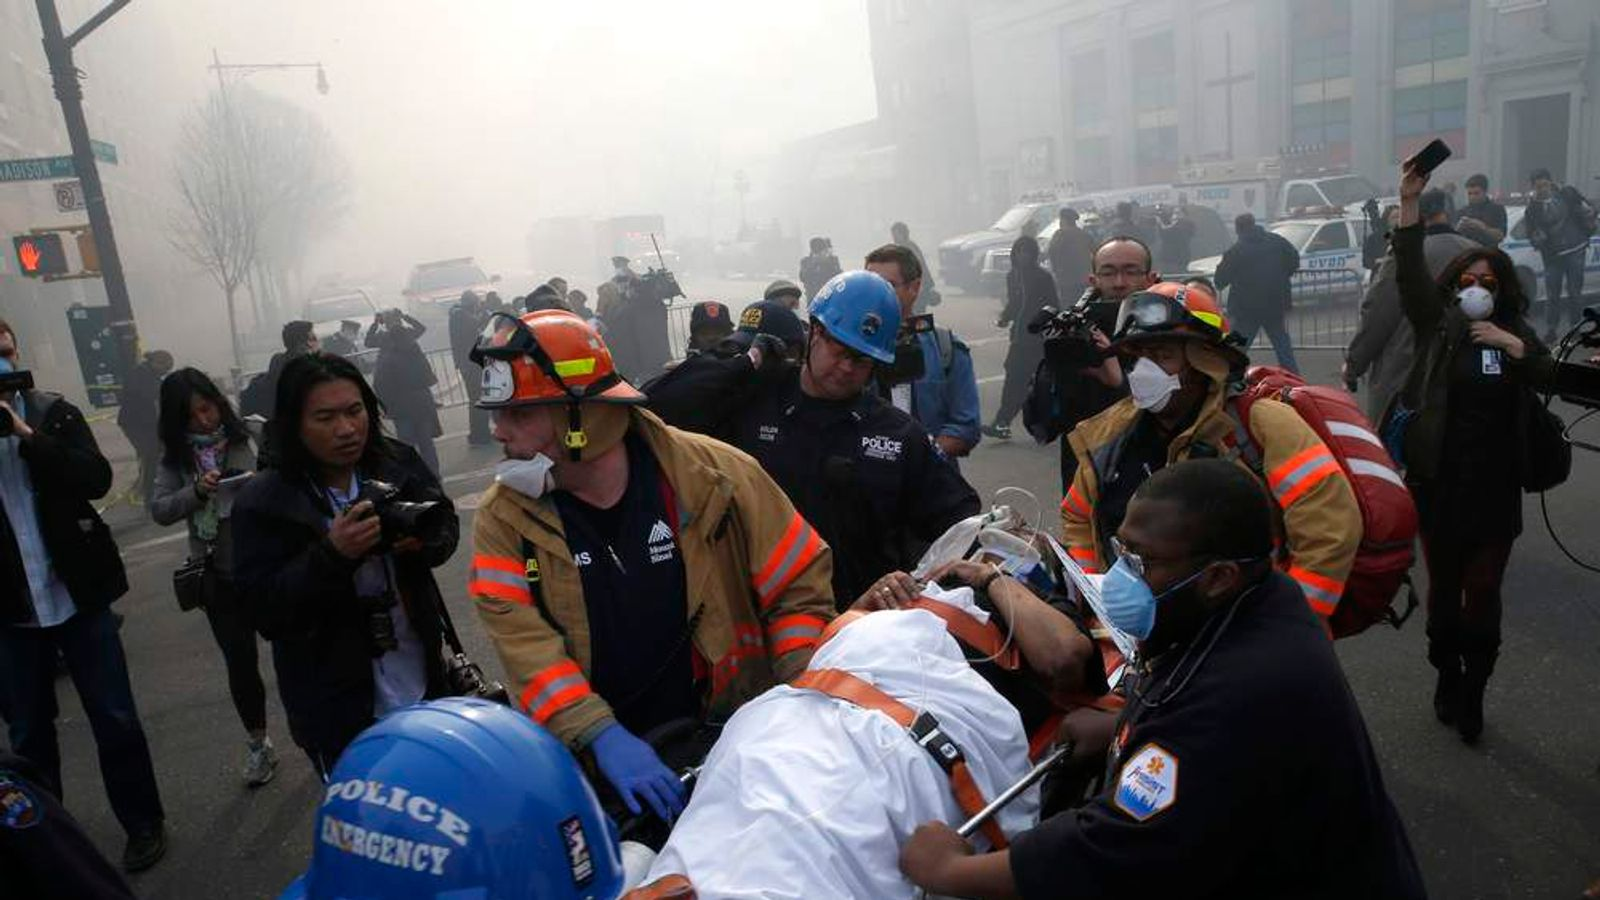 A victim is evacuated by emergency personal near an apparent building explosion fire and collapse in the Harlem section of New York City